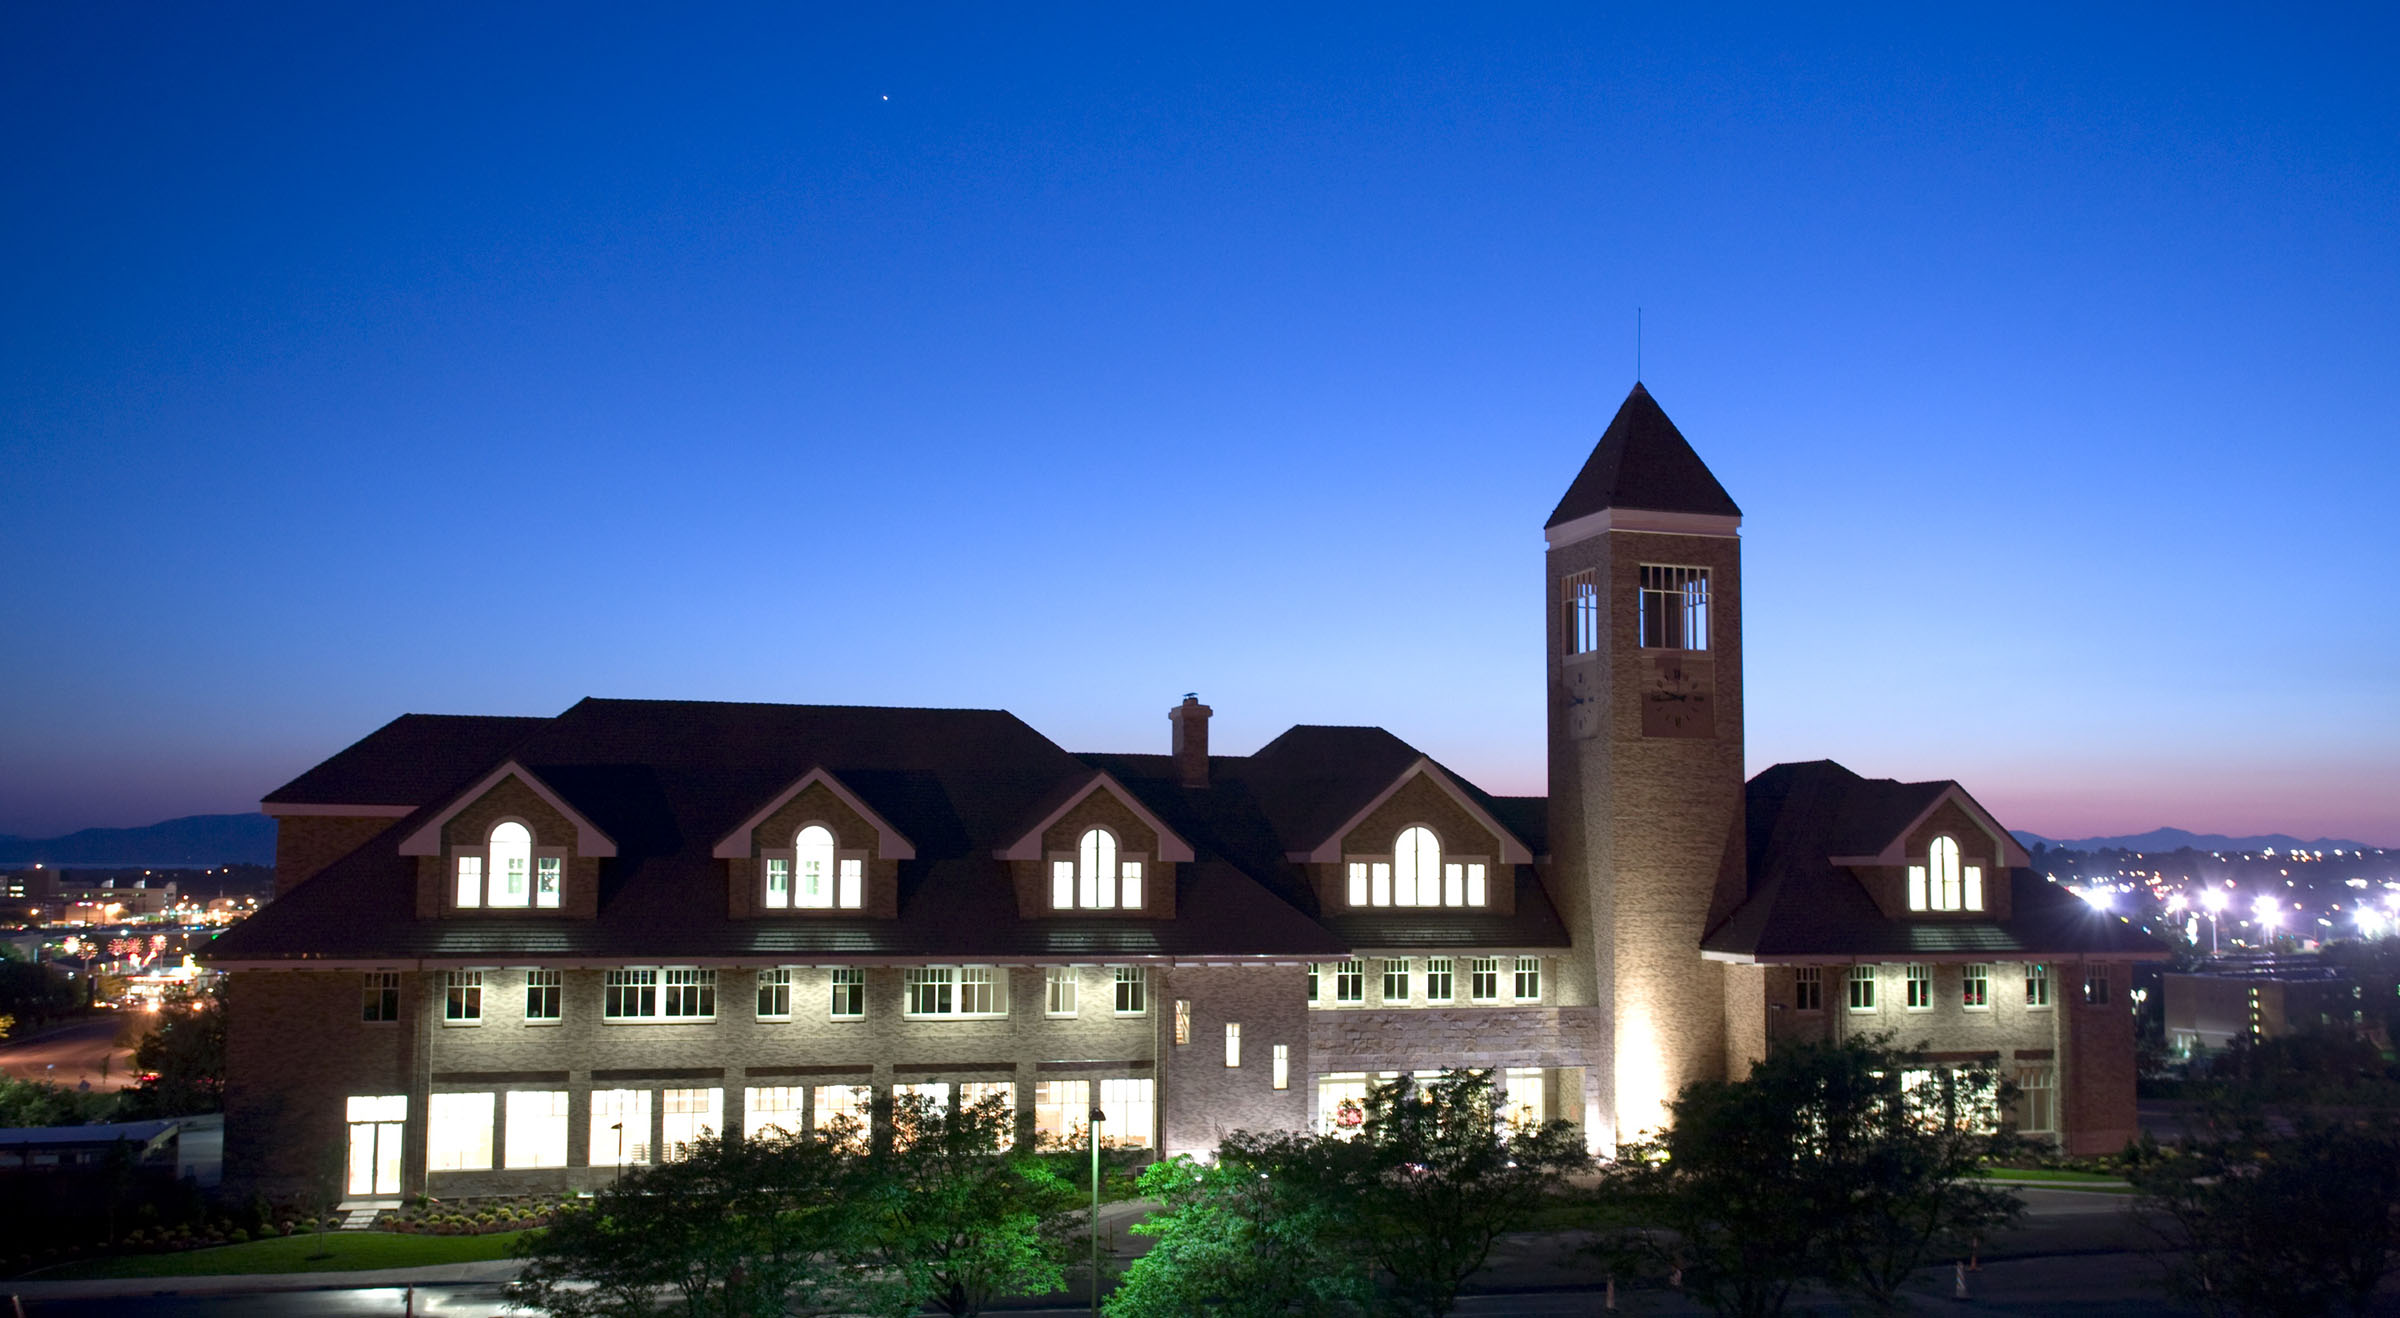 The Gordon B. Hinckley Alumni and Visitors Center at sunset.